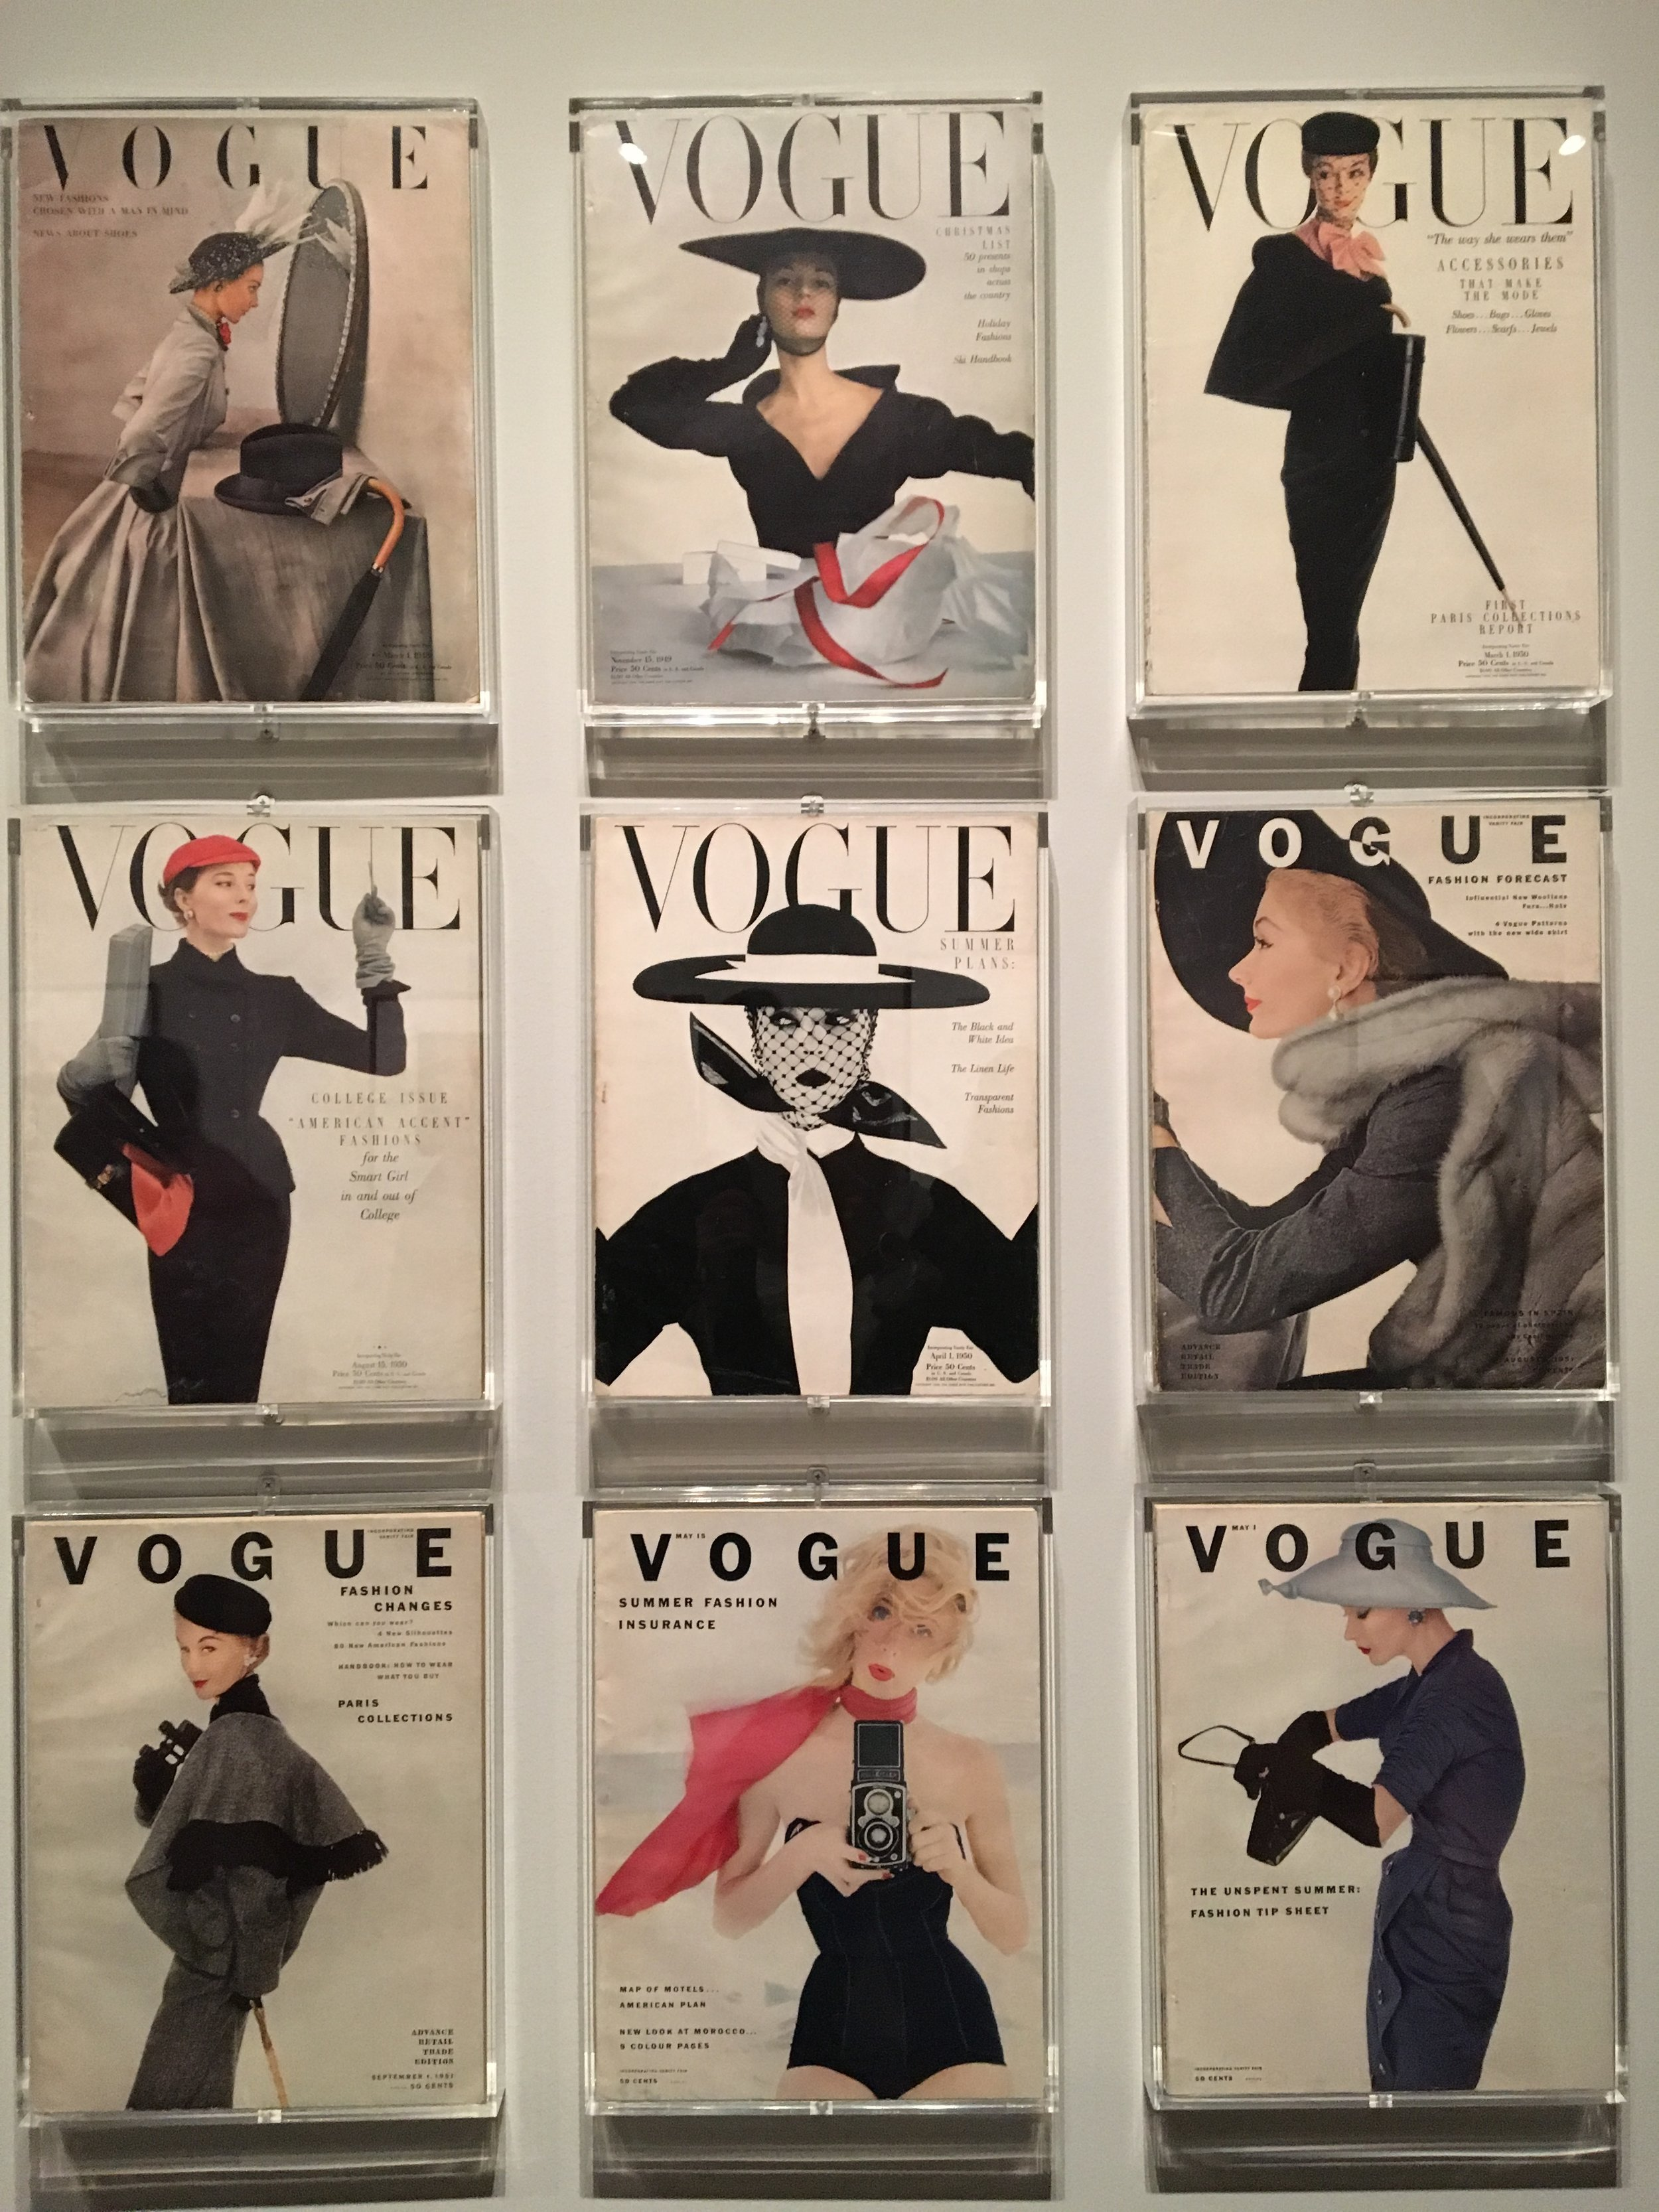 The Covers - The Vogue cover in the center is the most recognizable cover Irving Penn did for Vogue, April 1, 1950.